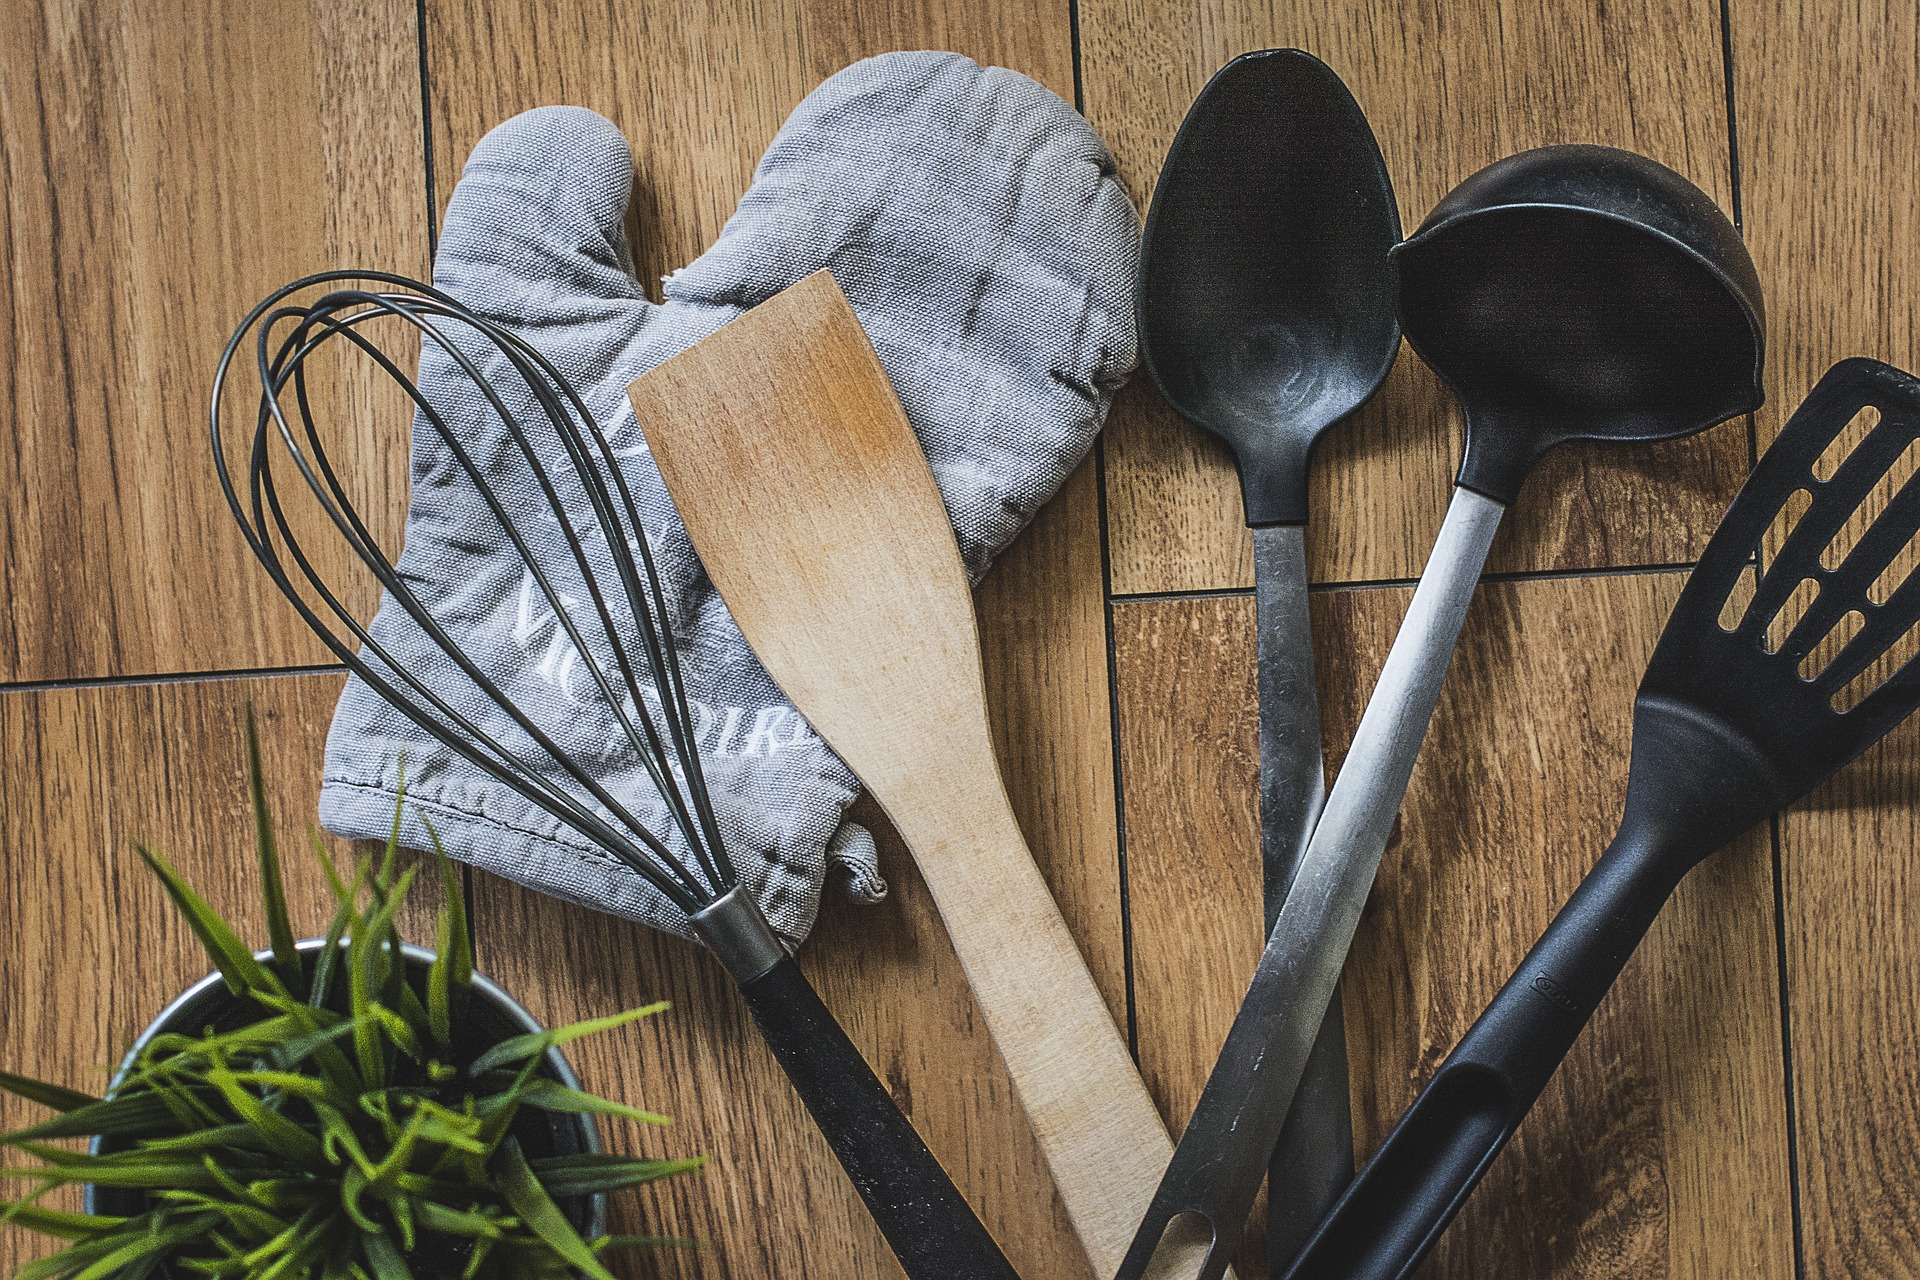 Image of various cooking utensils on a countertop